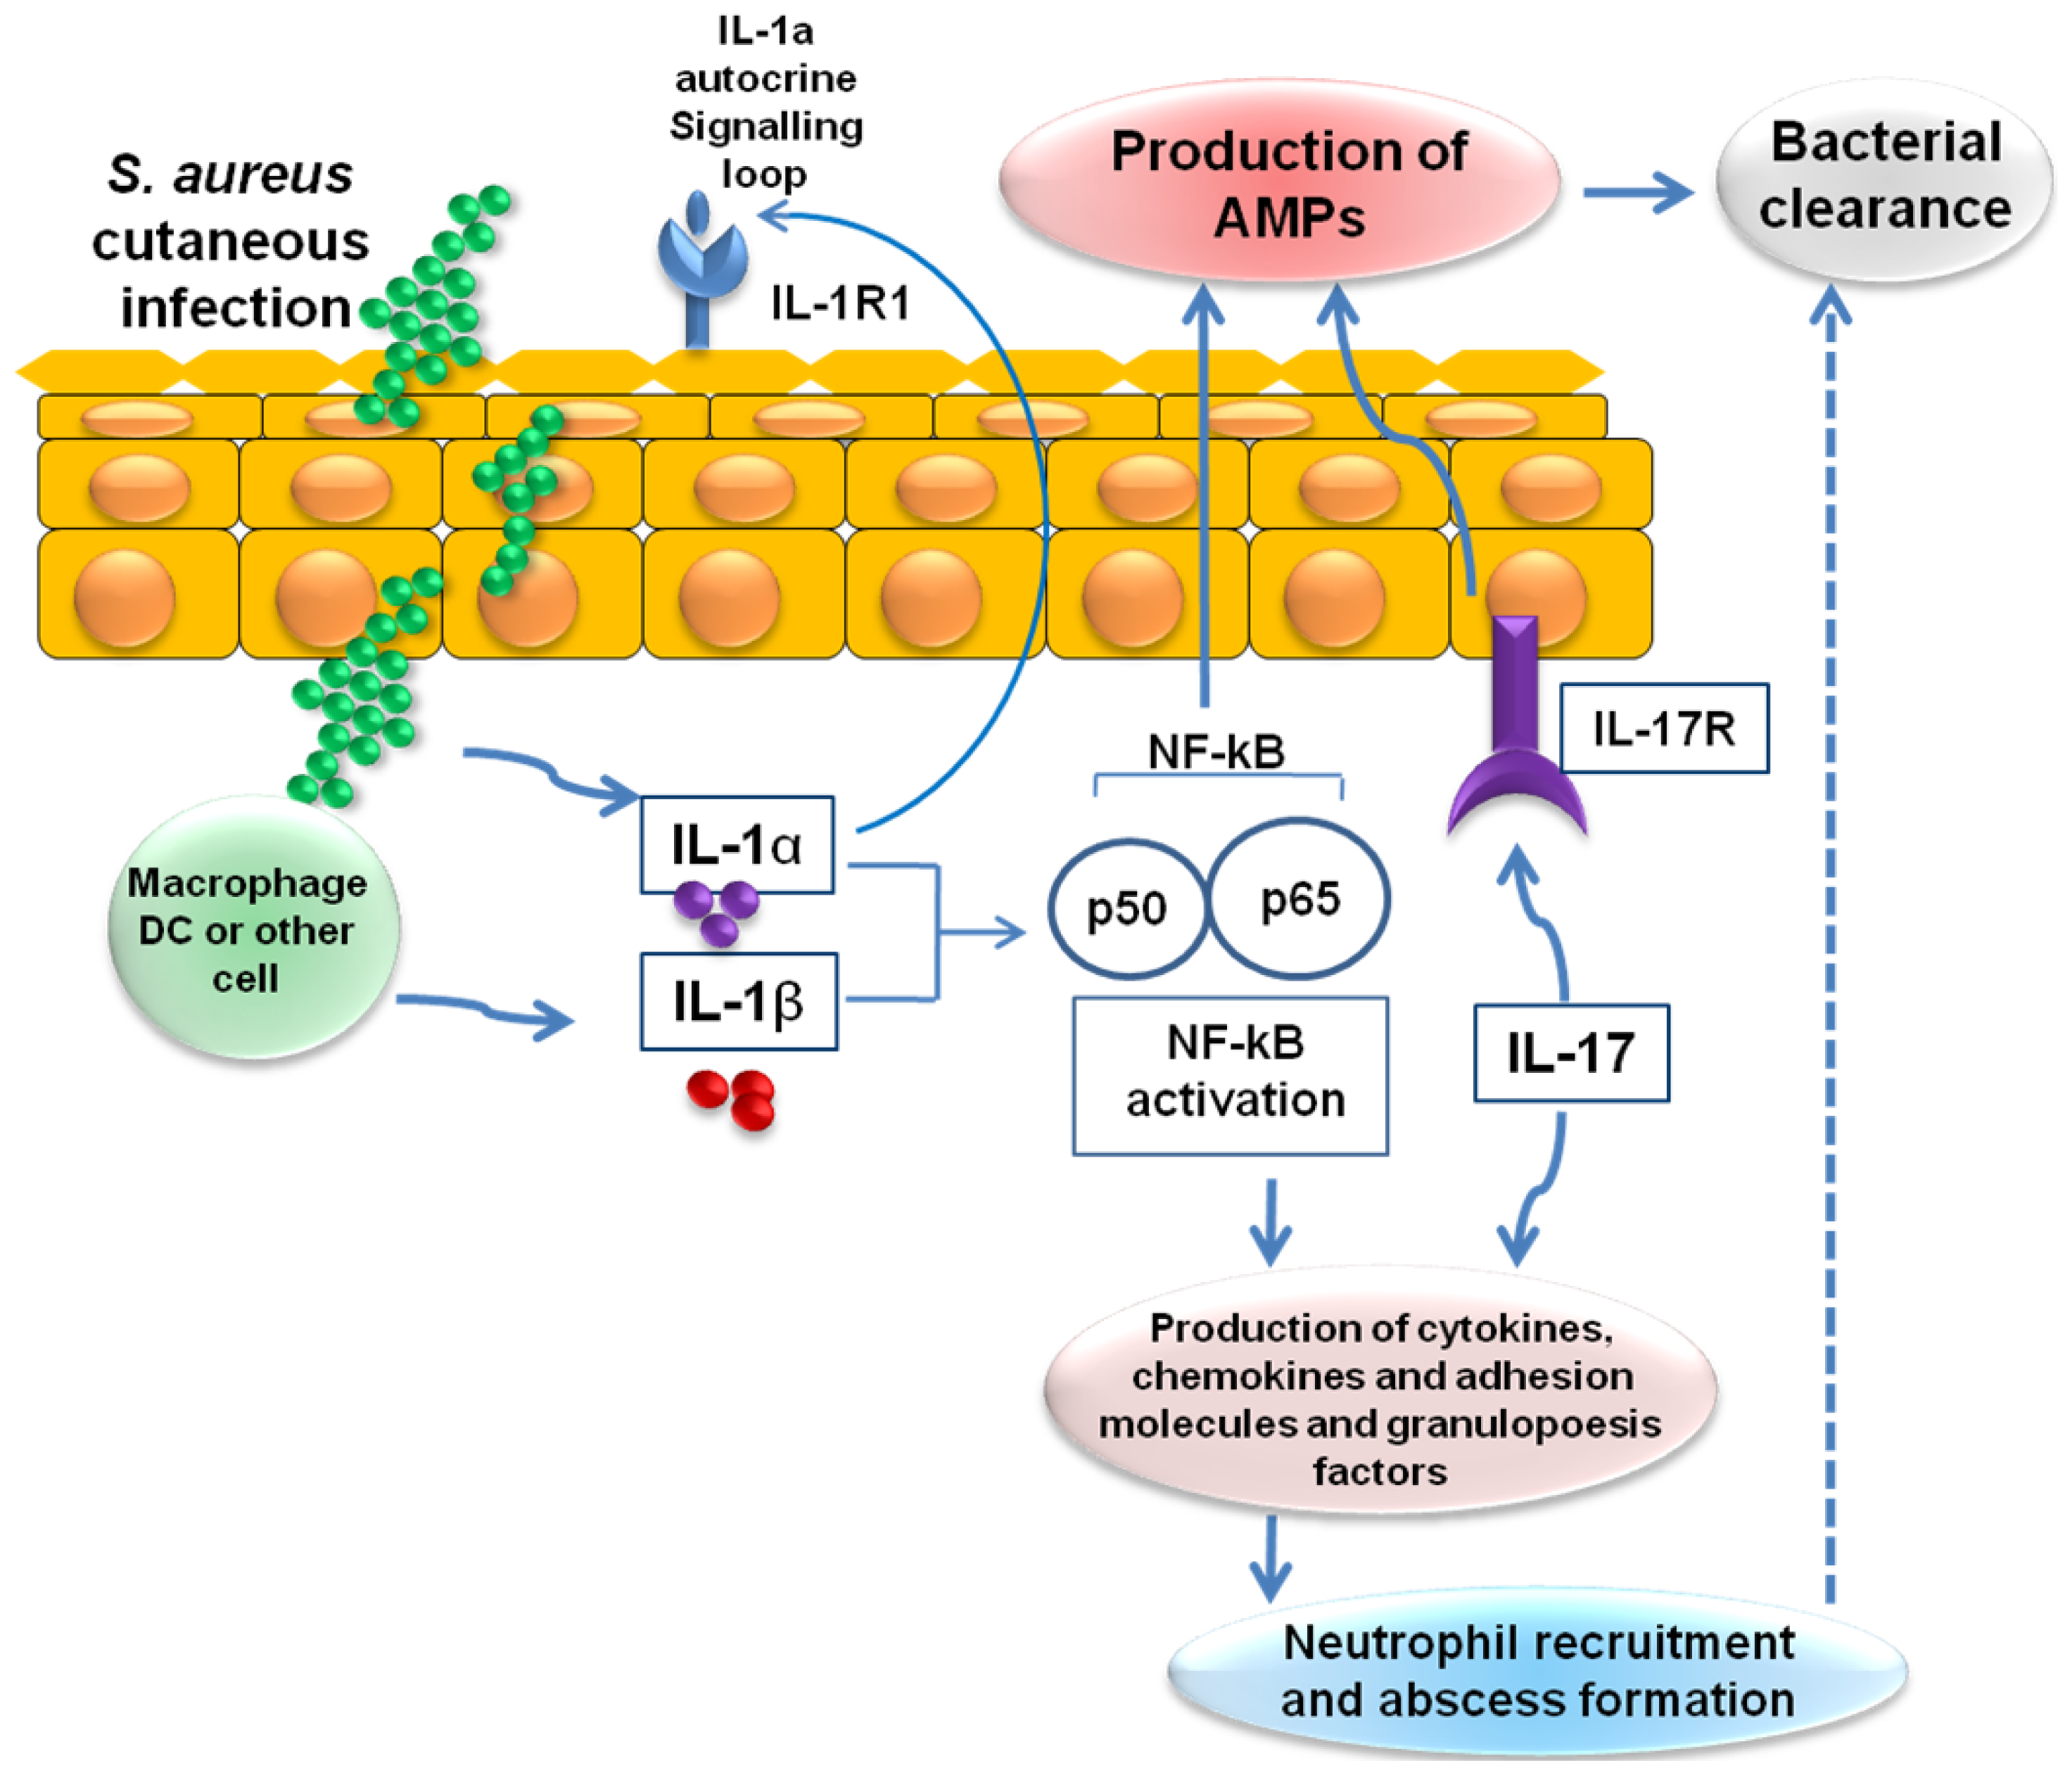 cationic antimicrobial peptides in humans Abstract objectives: cathelicidin ll37 represents one of the chemical  defence components of bladder epithelial cells that in- clude antimicrobial  peptides.